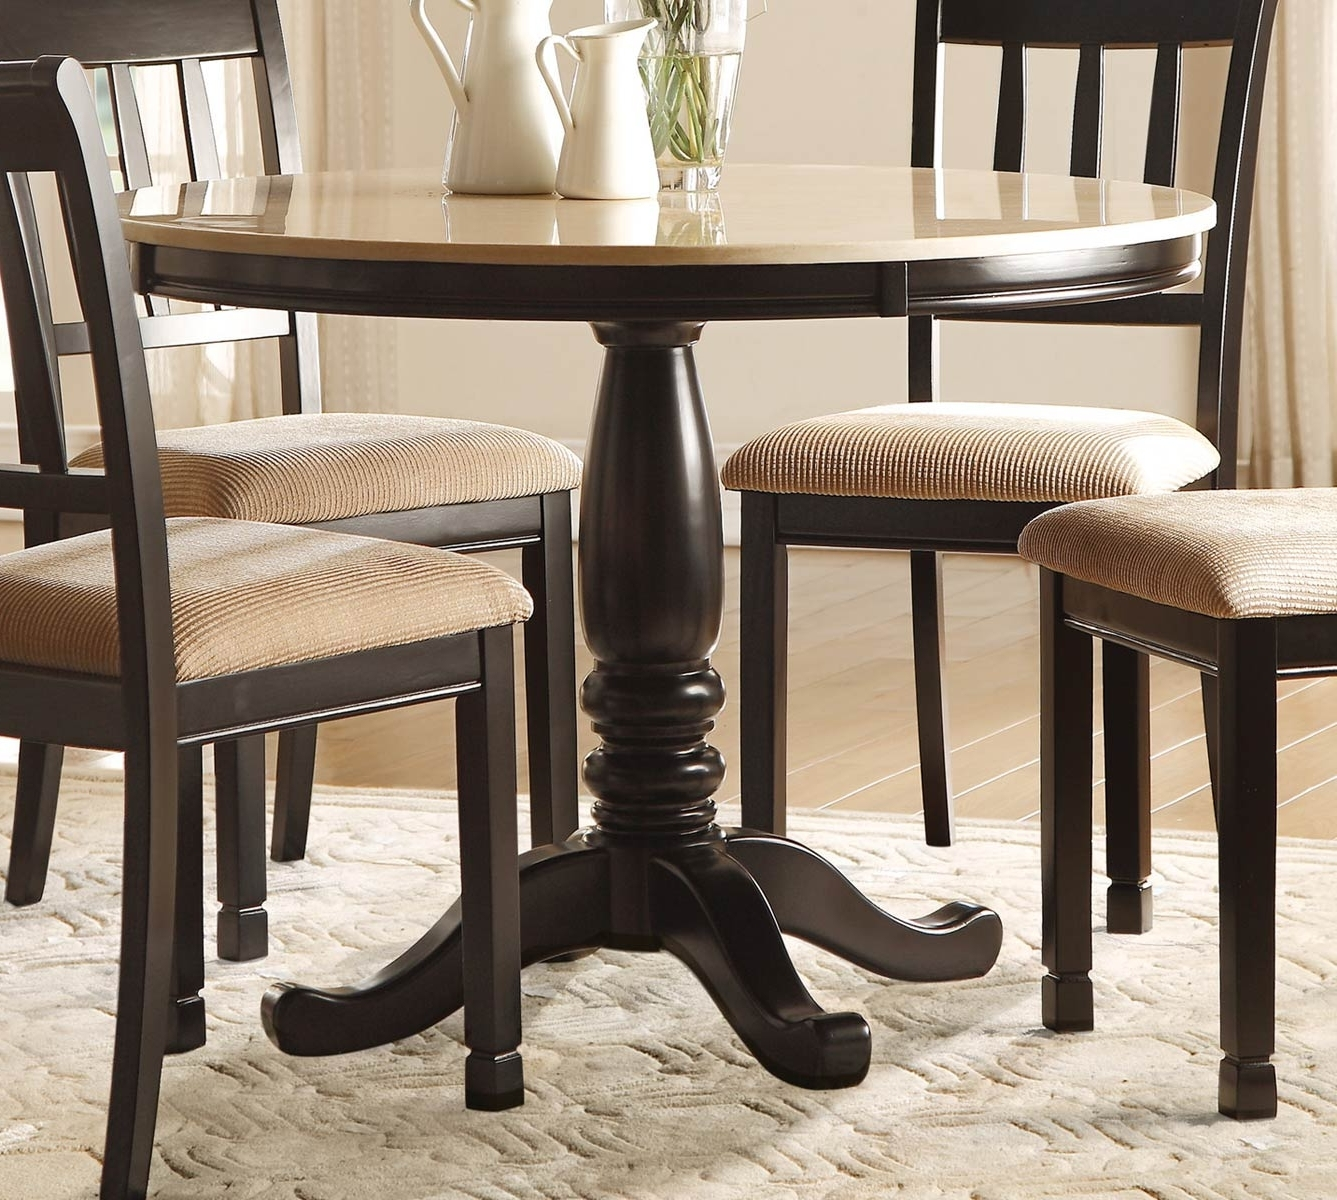 Round Dining Tables With Most Up To Date Homelegance Dearborn Round Dining Table – Faux Marble Top – Black (View 9 of 25)